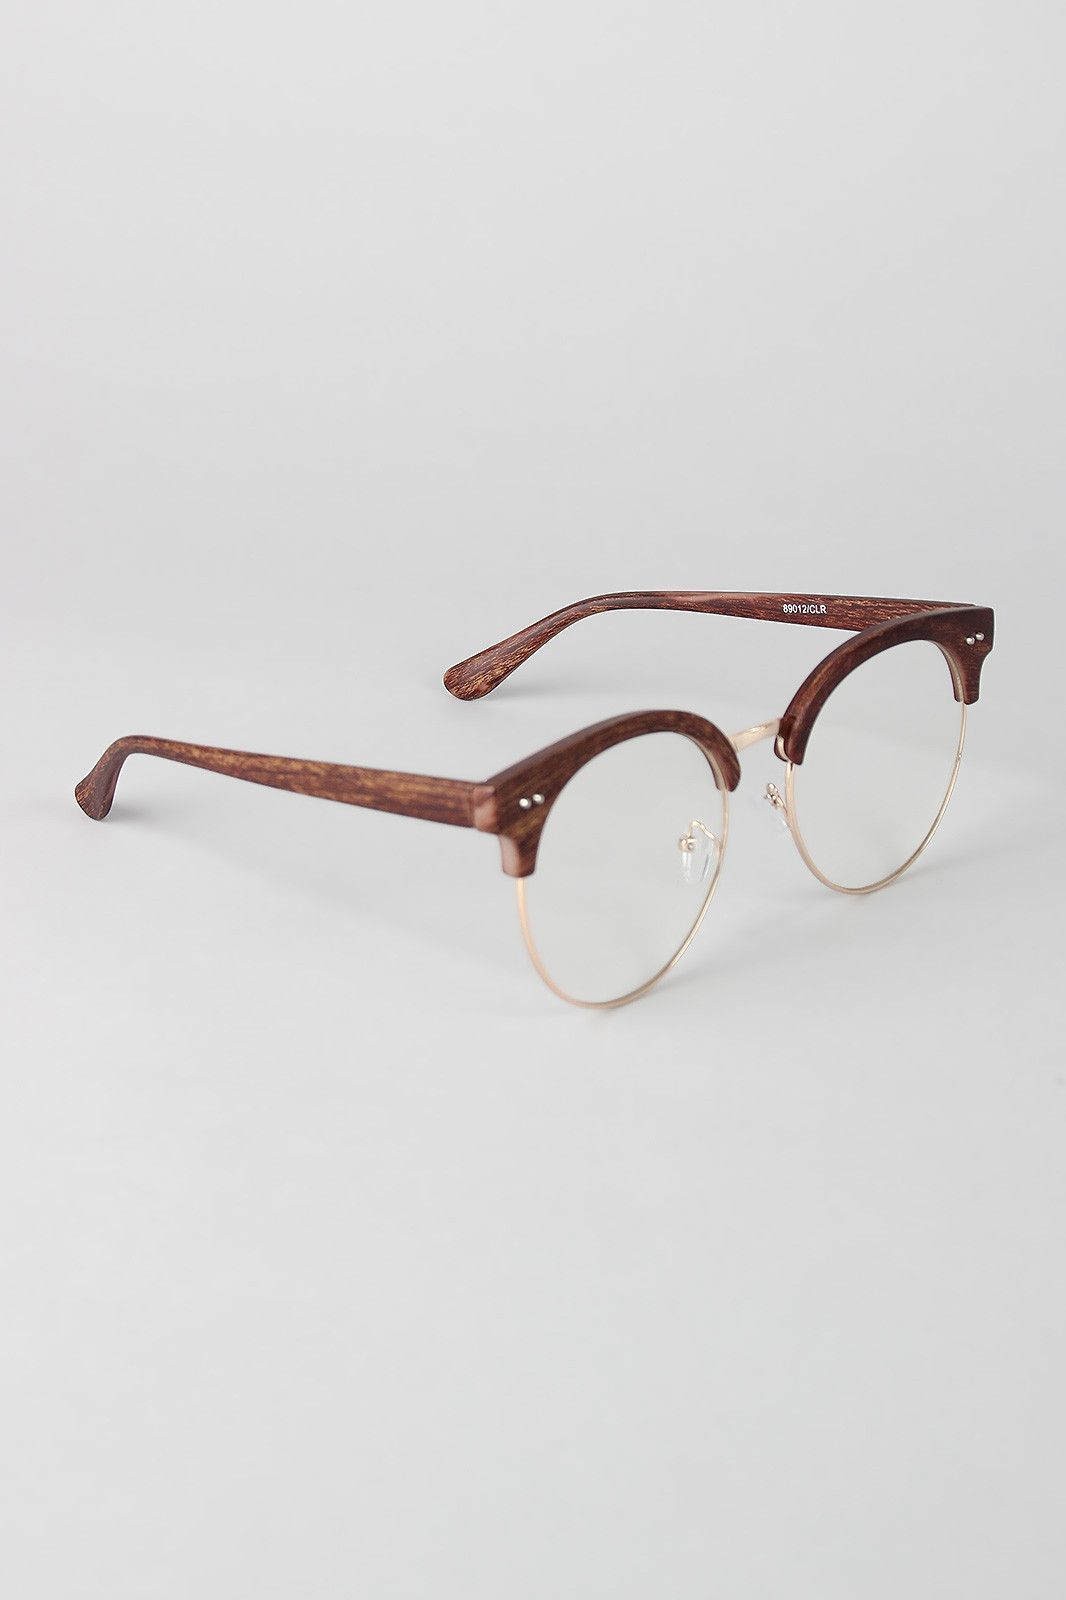 Faux Wood Horn Rimmed Glasses | Accessories | Pinterest | Horn ...